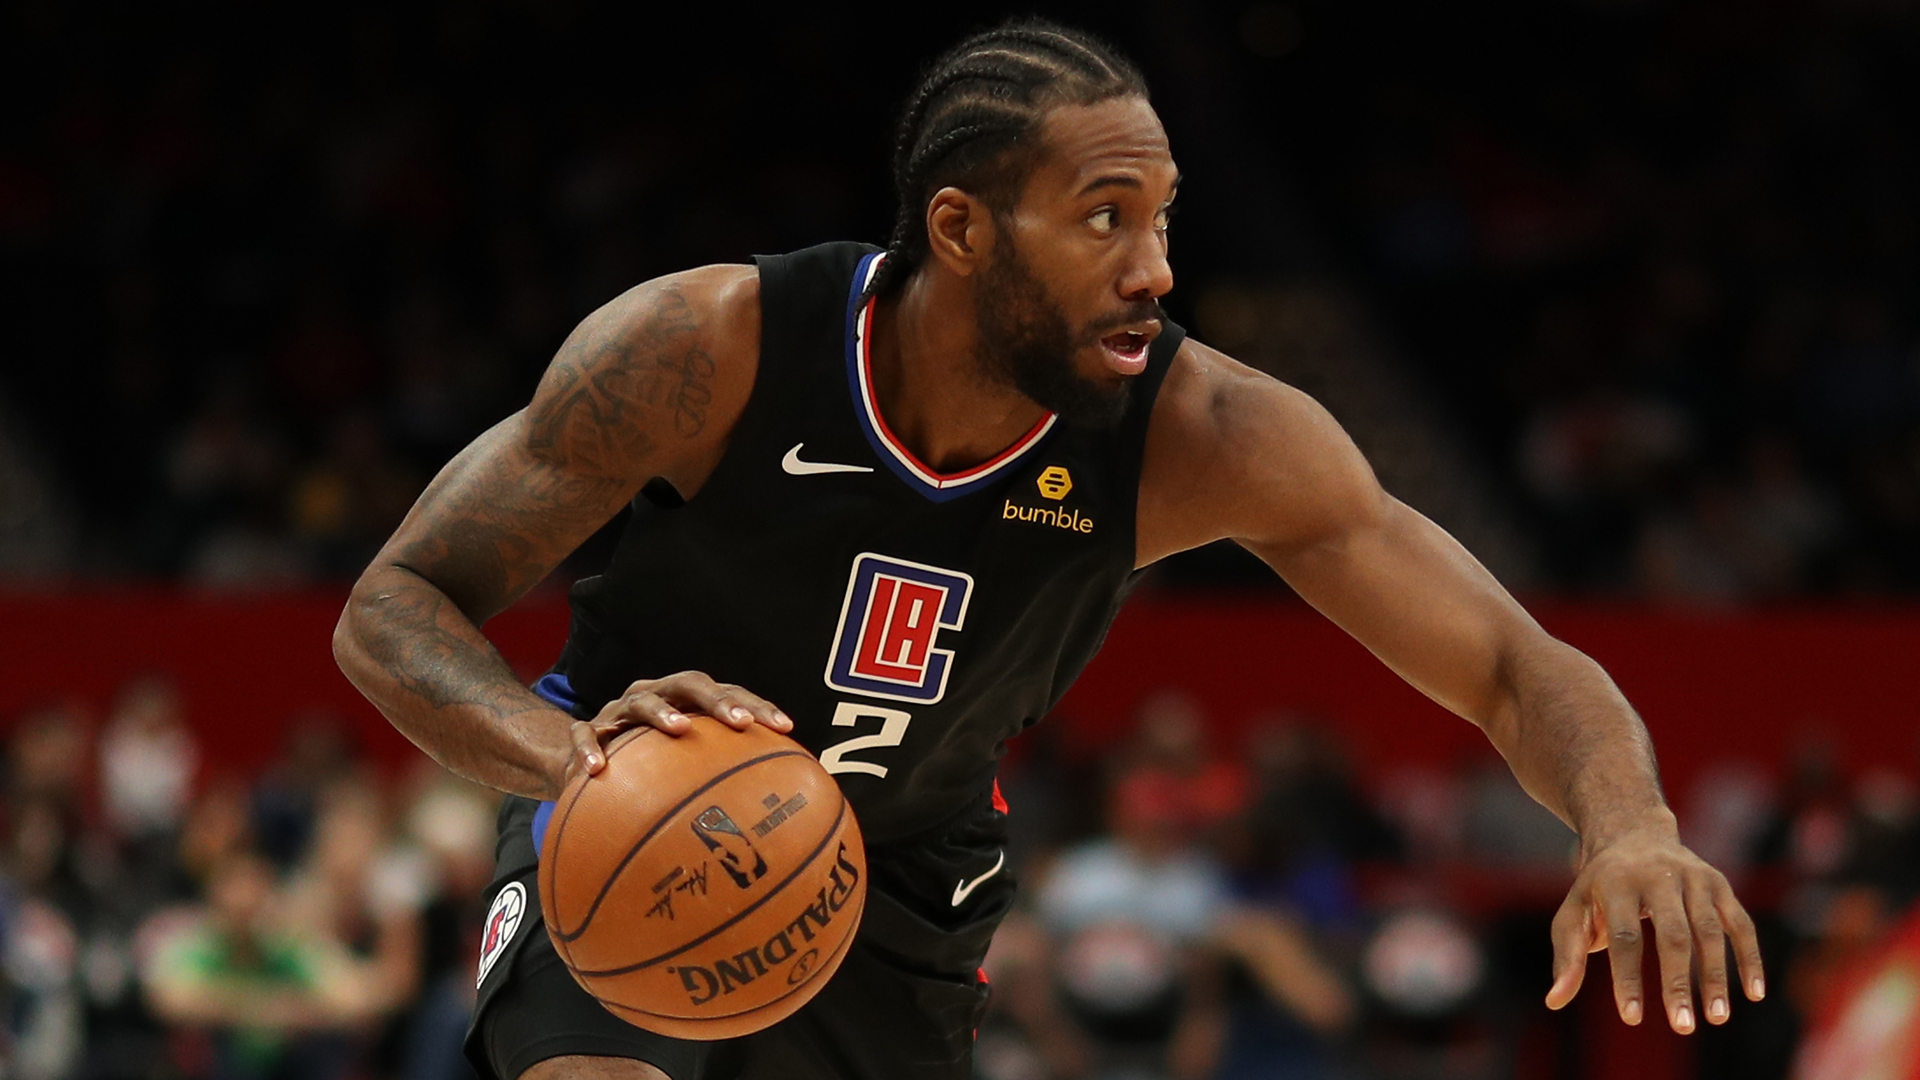 The Los Angeles Clippers beat the Raptors as Kawhi Leonard returned to Toronto in the NBA.